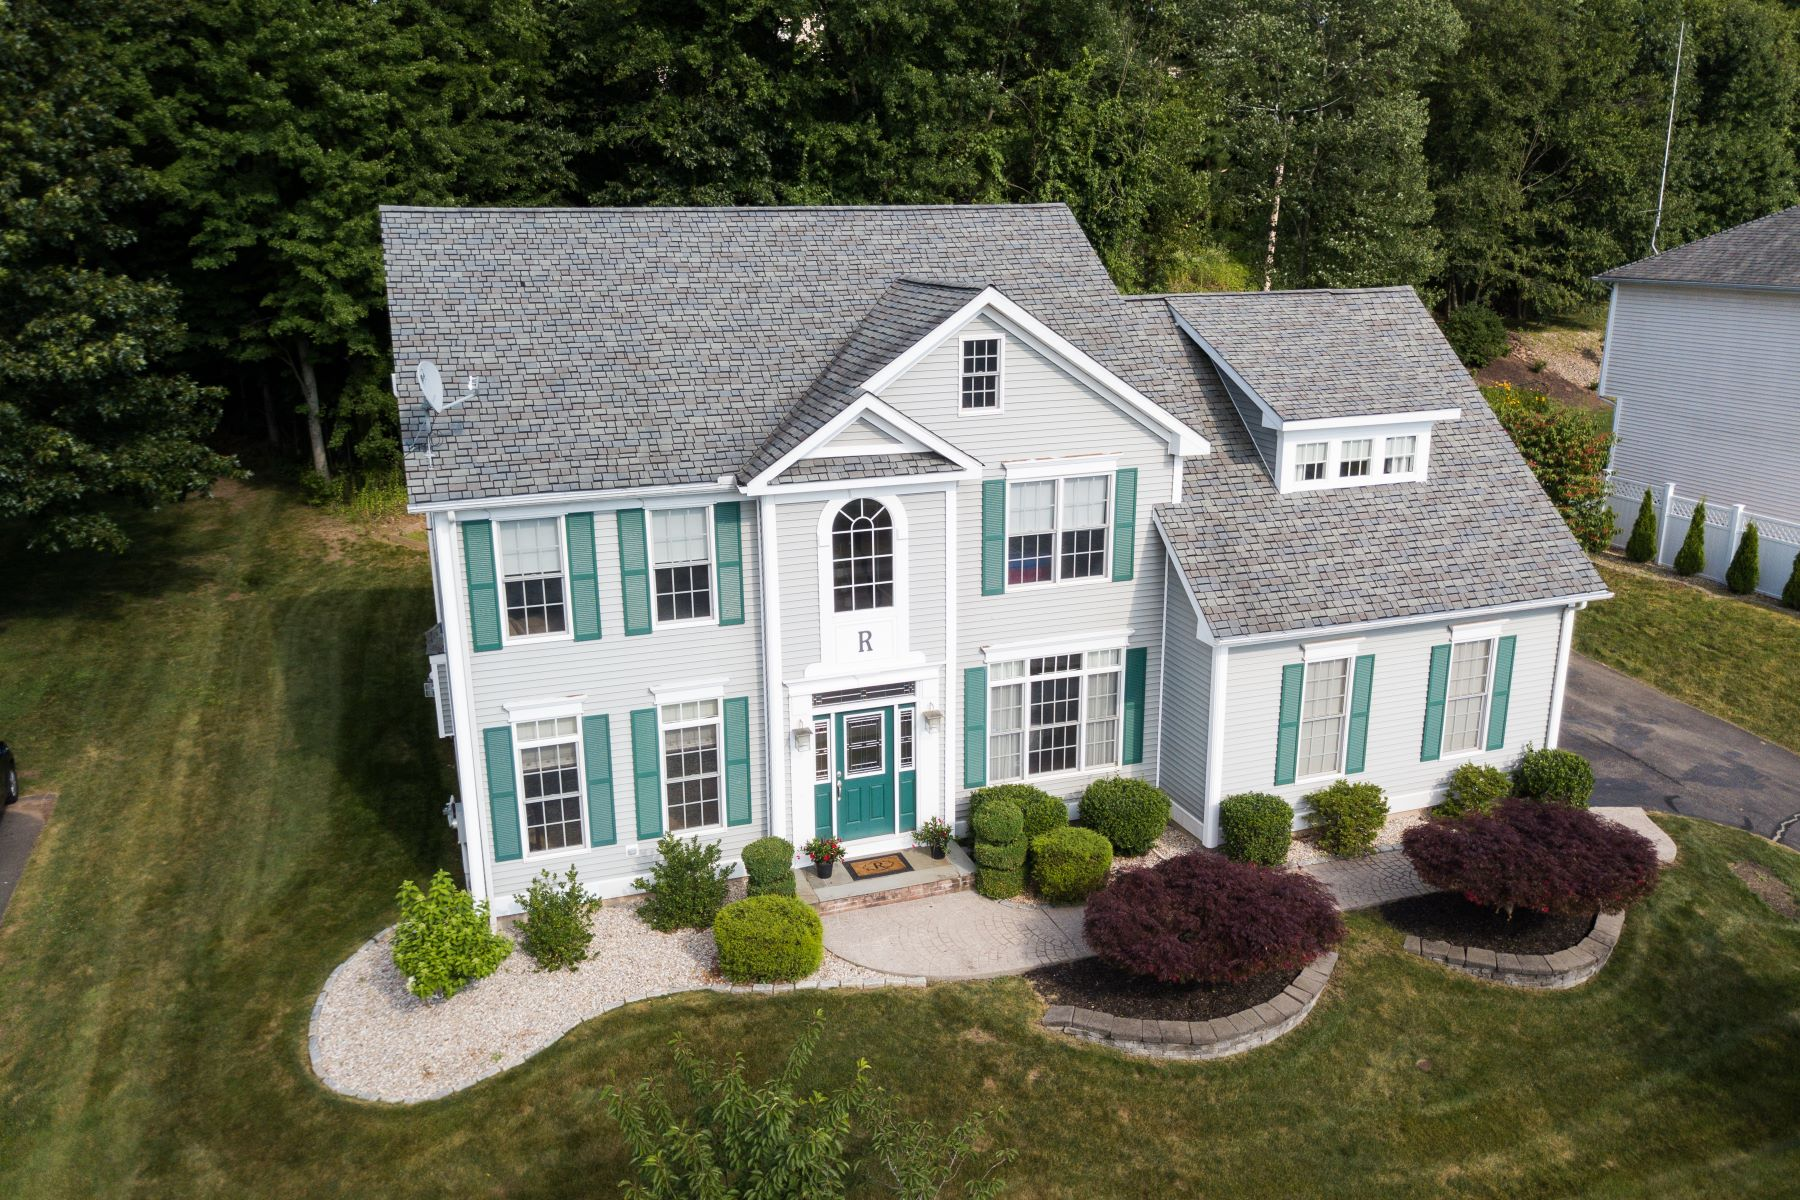 Single Family Homes for Active at 50 Chelsea Court 50 Chelsea Ct Middletown, Connecticut 06457 United States